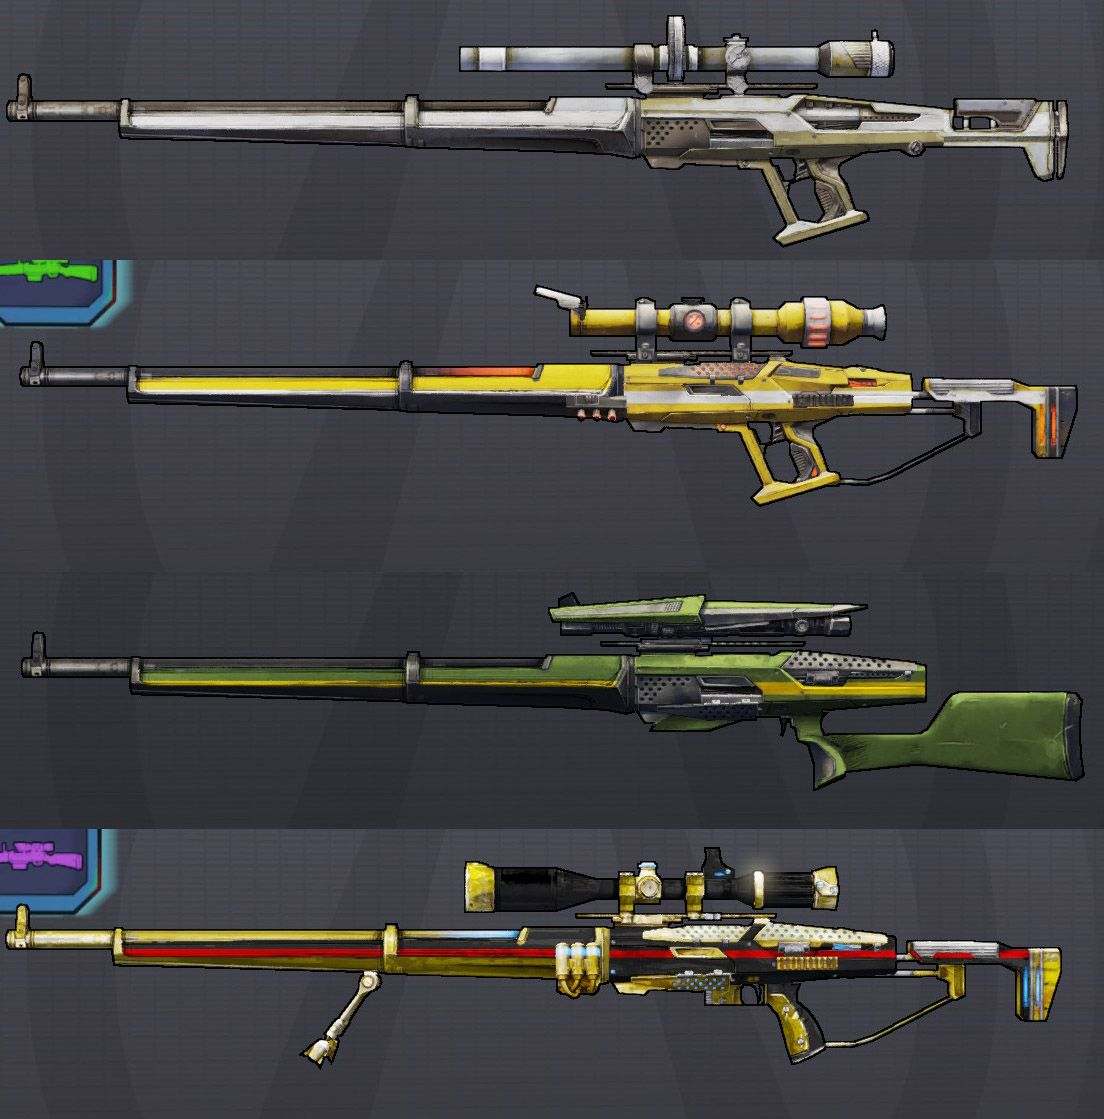 snipers | FMP weapons | Pinterest | Borderlands, Weapons and Rarity